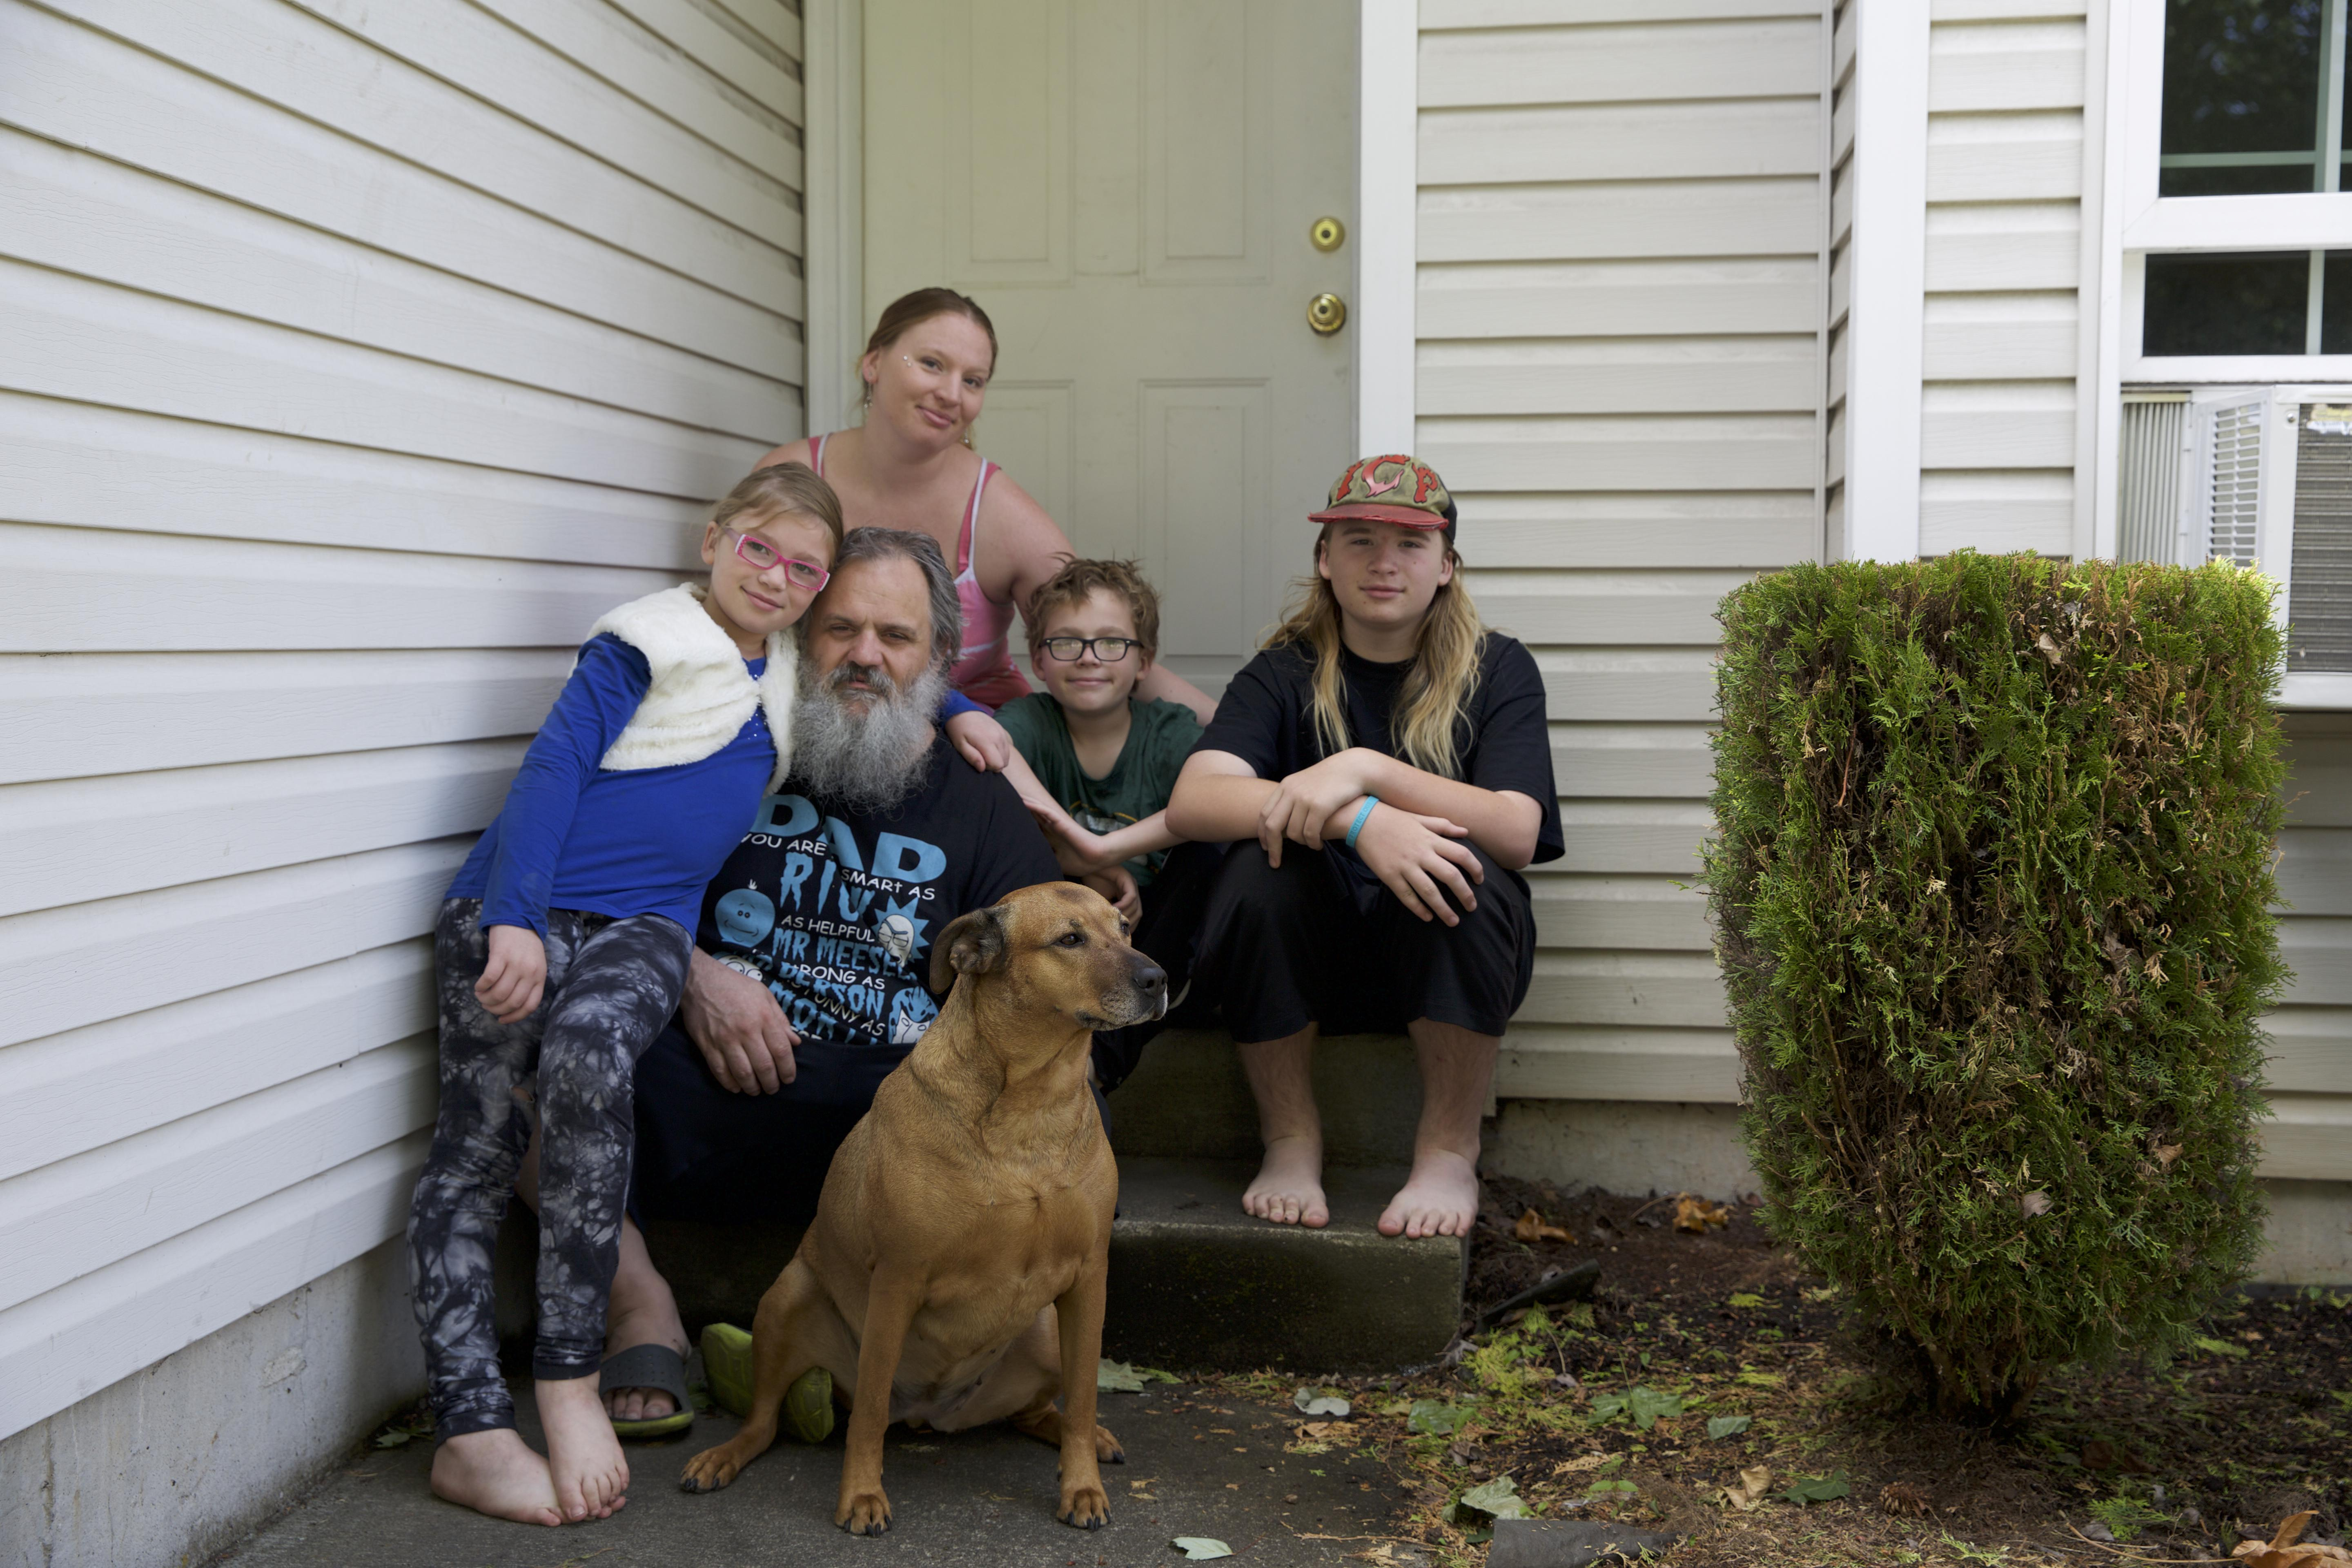 AndaKiss, Britney, Tank, Talin, and Kenny Dunham, along with their dog Lucy, on the front steps of their home.